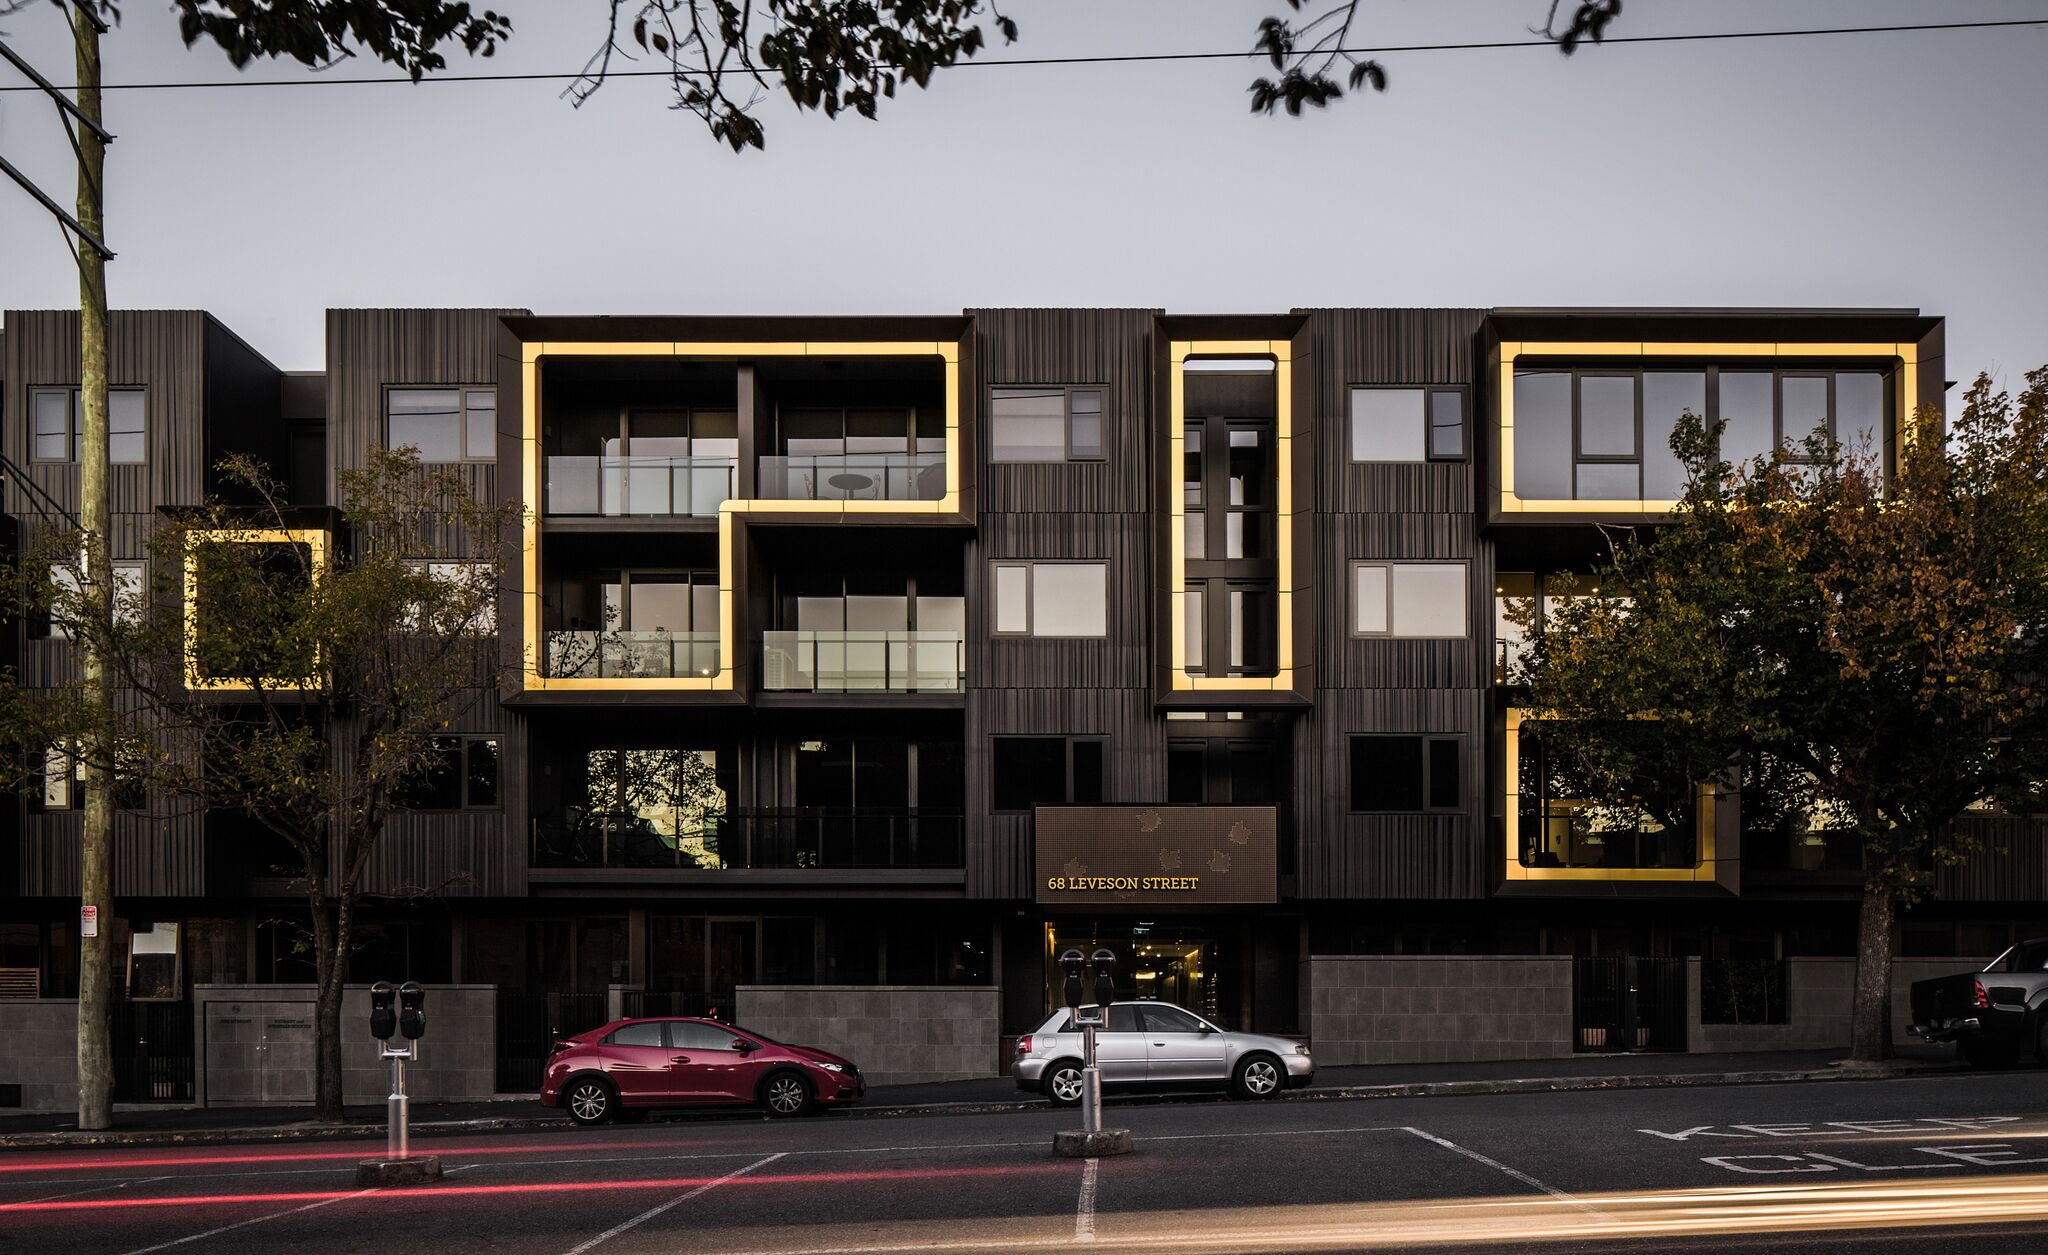 Ryan and Leveson - PDG - Architecture Archive - The Local Project